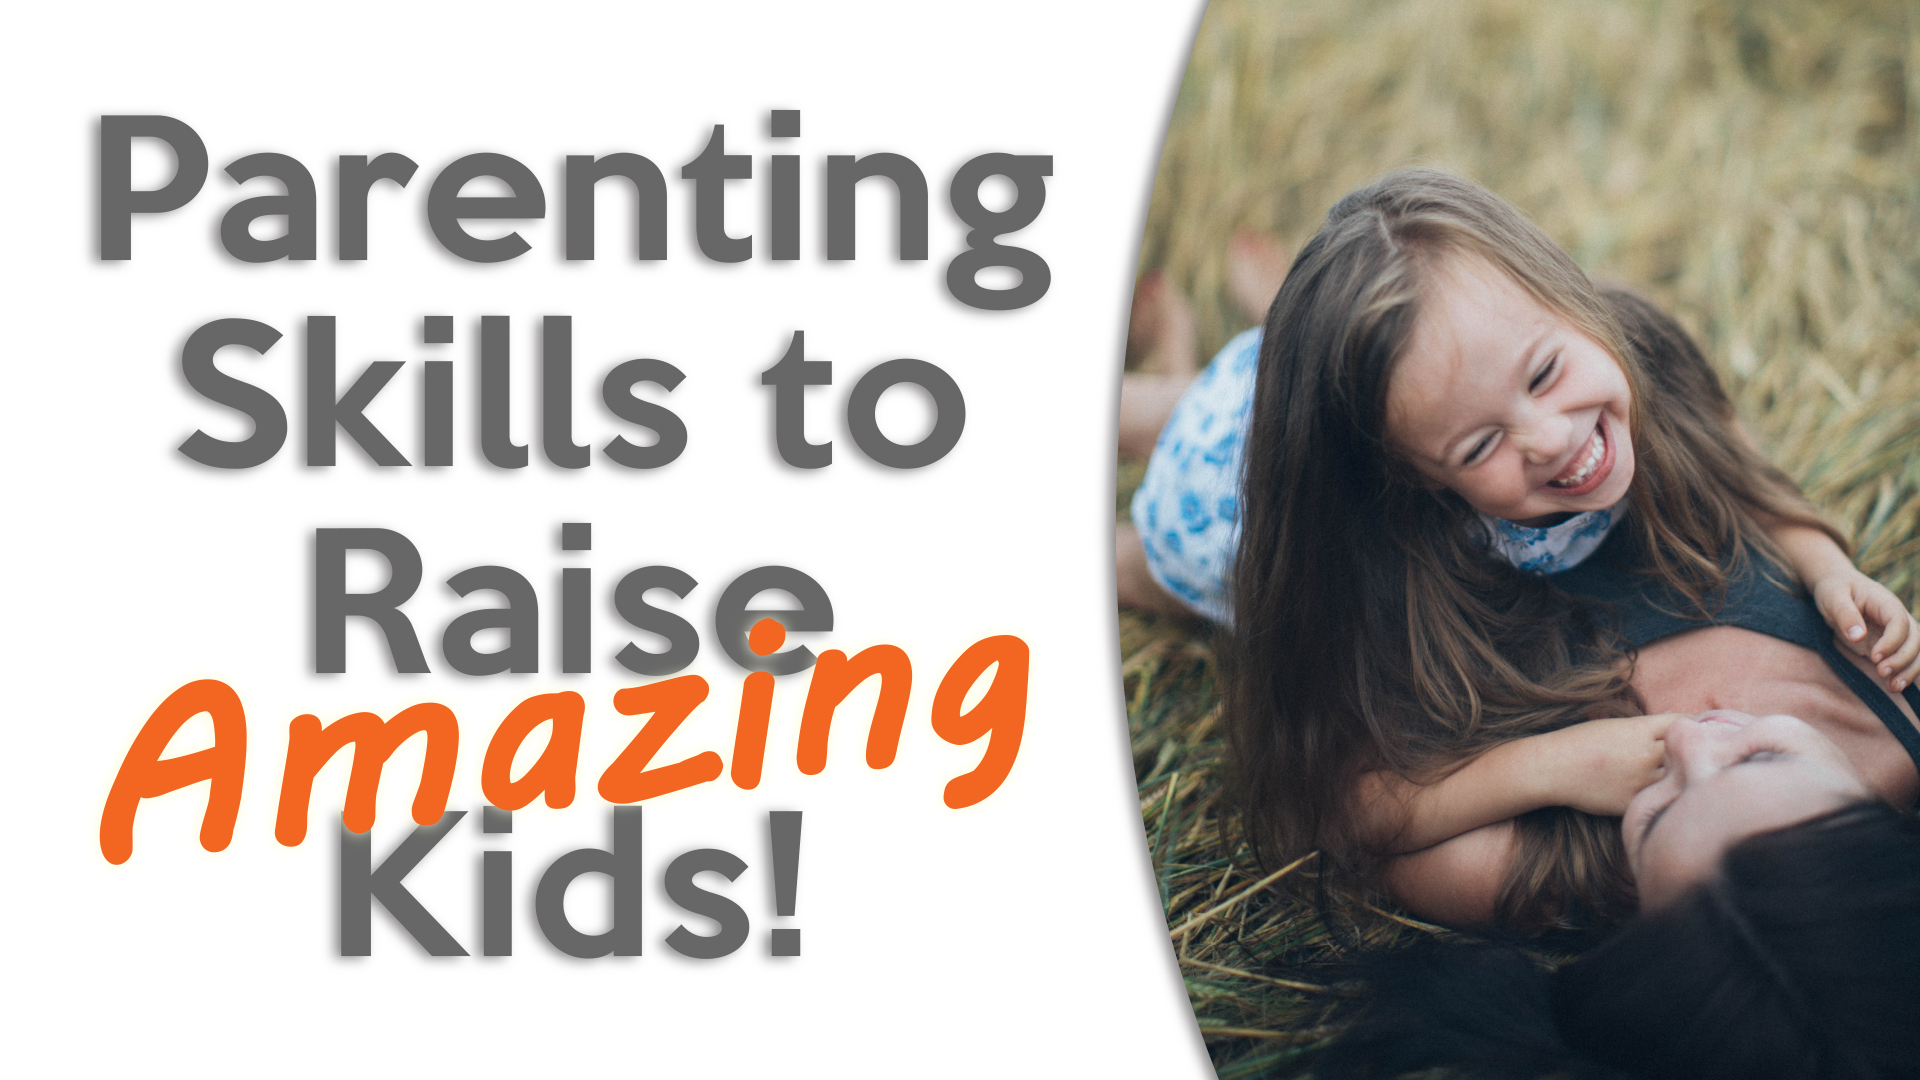 Parenting Skills to Raise Amazing Kids! -Aug 25th